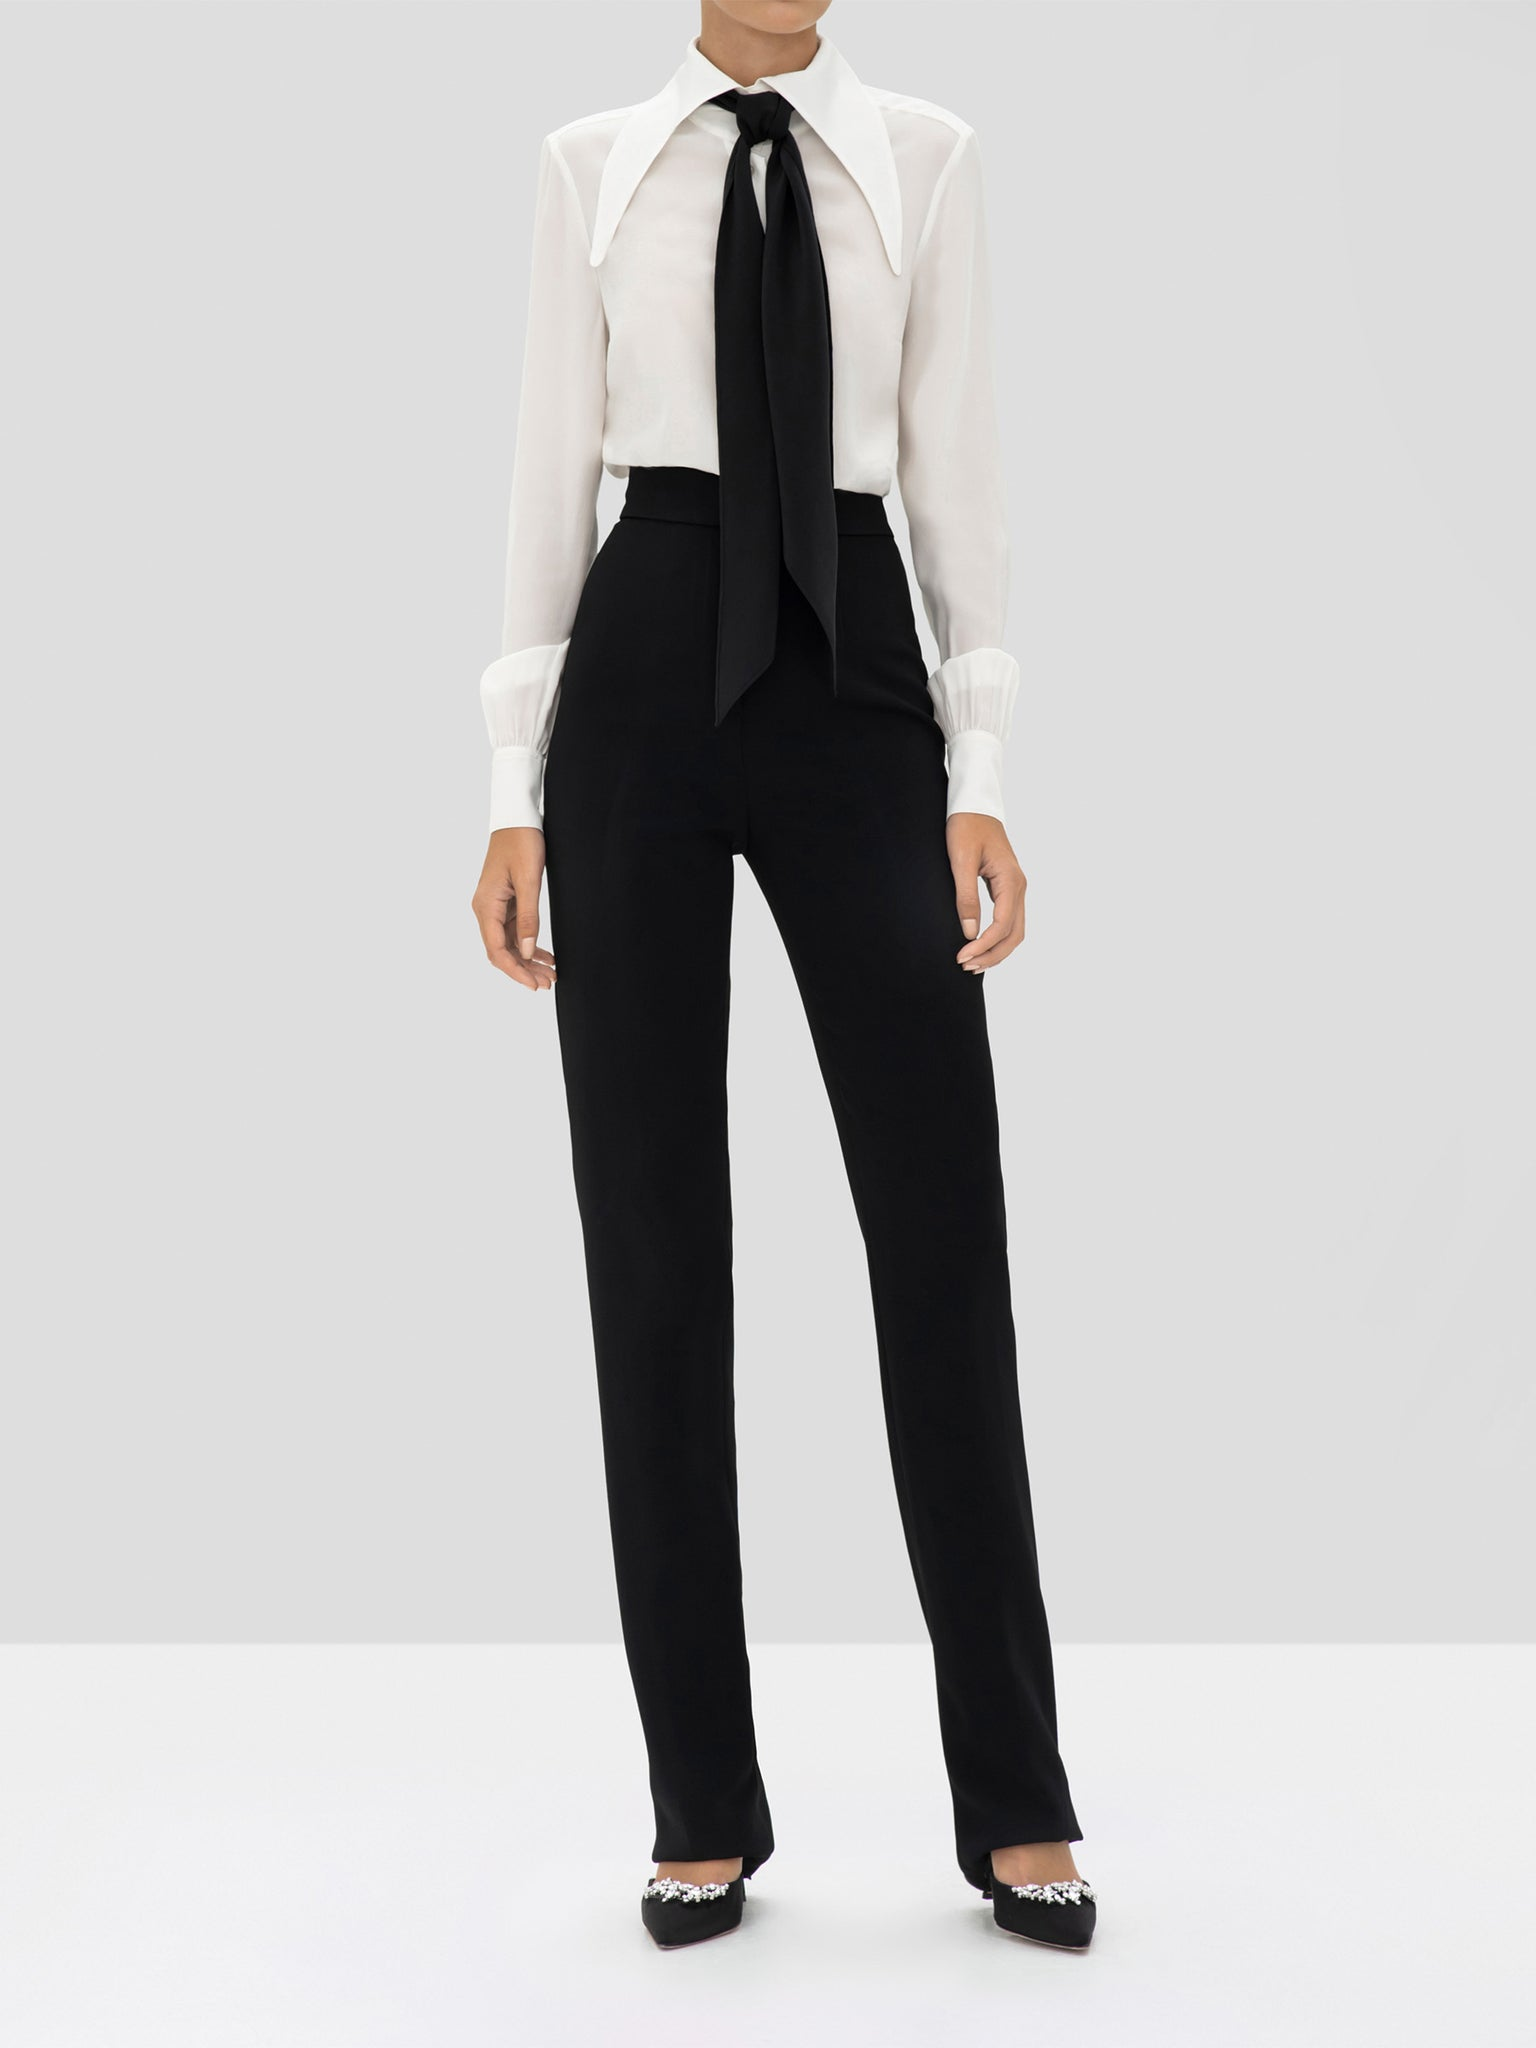 Alexis Crawford Top in Off White and Lofton Pant in Black from the Holiday 2019 Collection